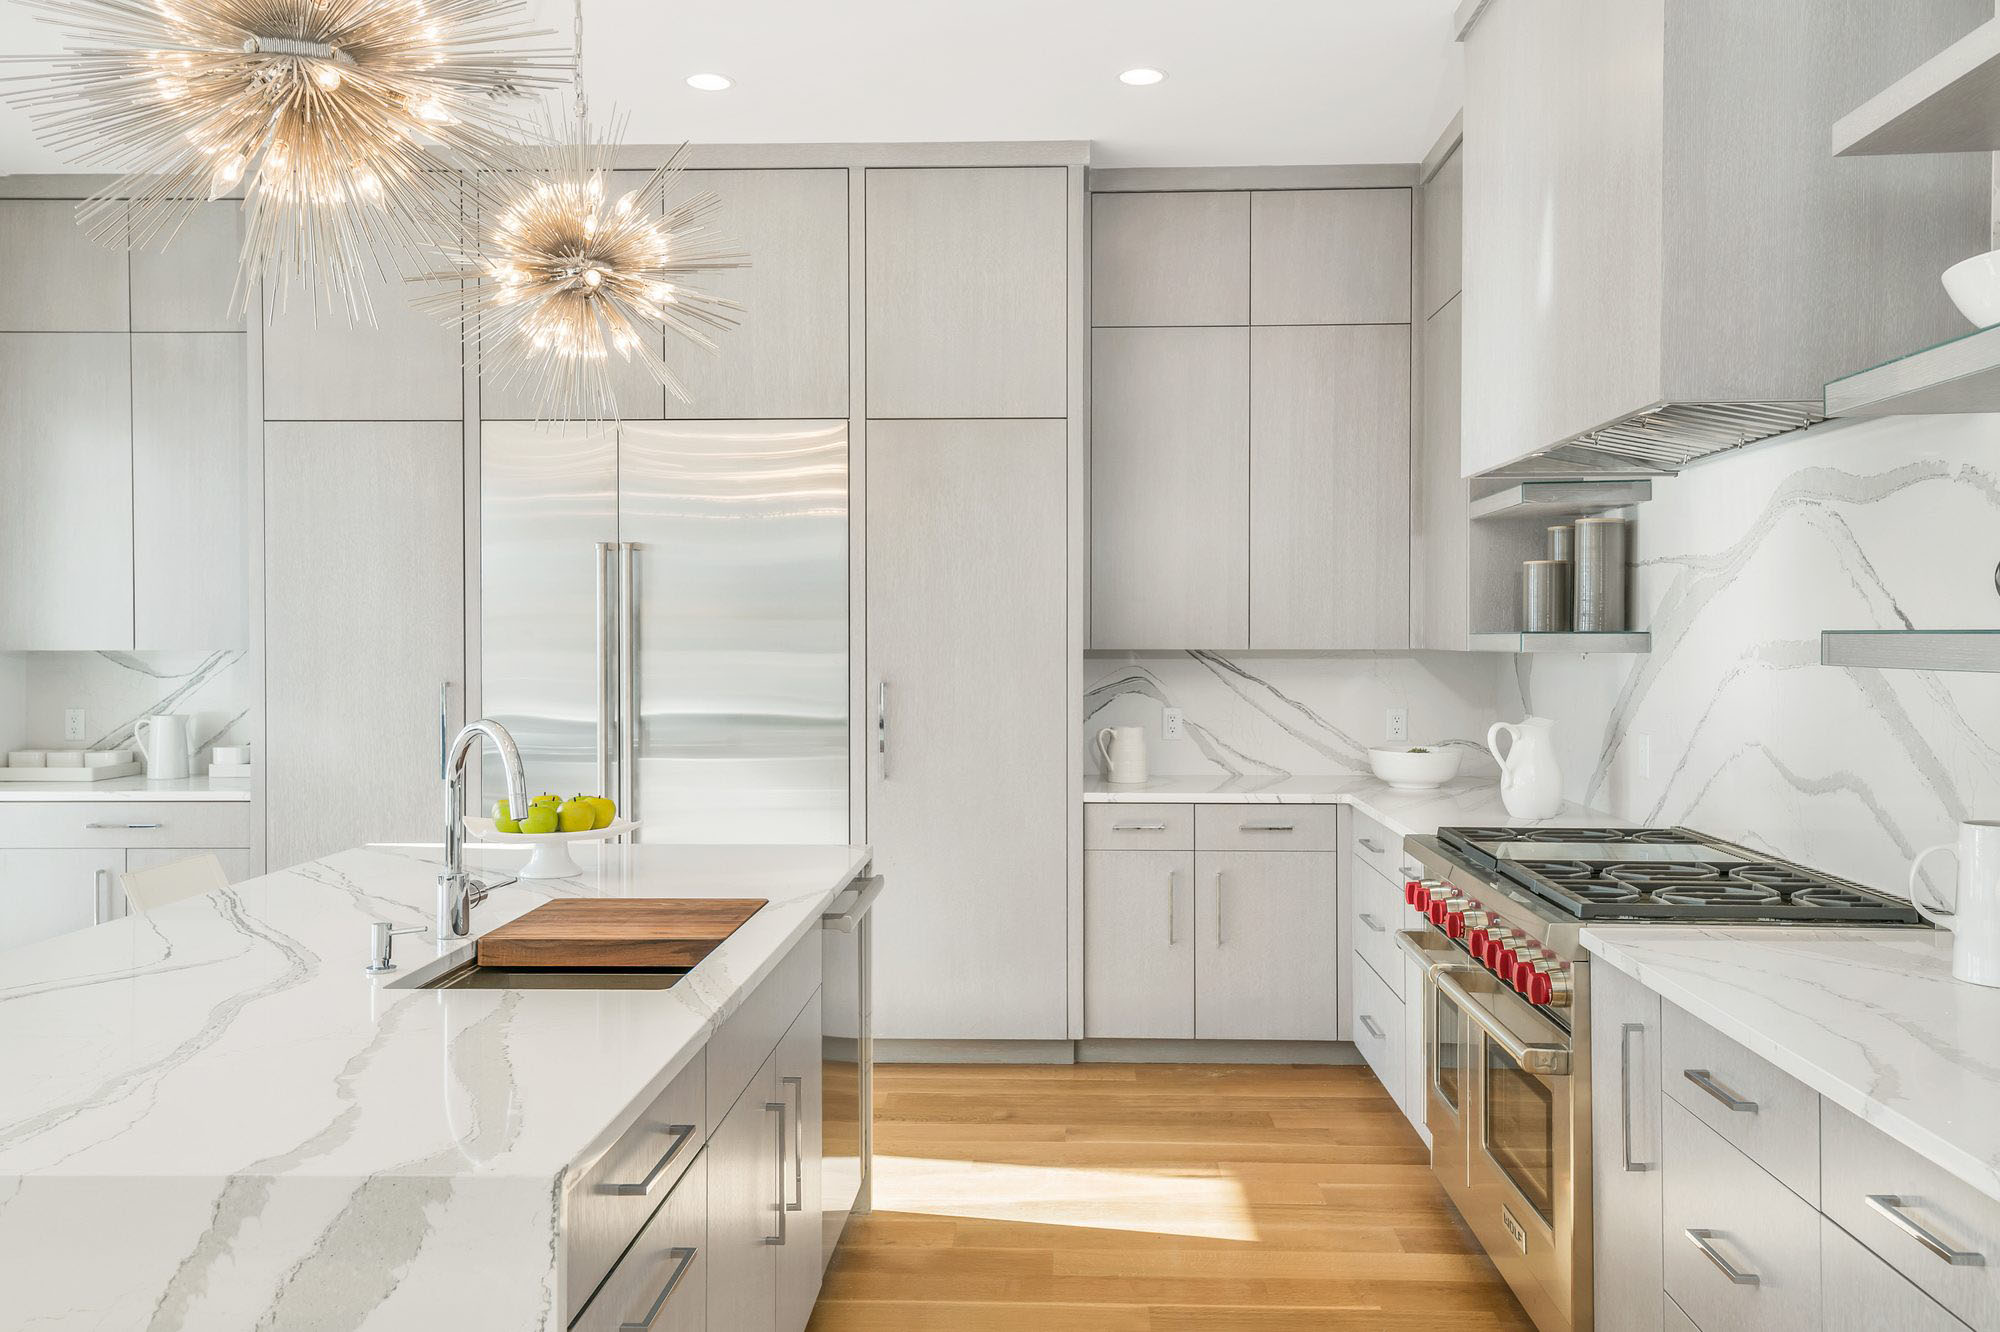 Modern kitchen design with marble quartz countertops, solid slab backsplash and flat faced light gray cabinets.